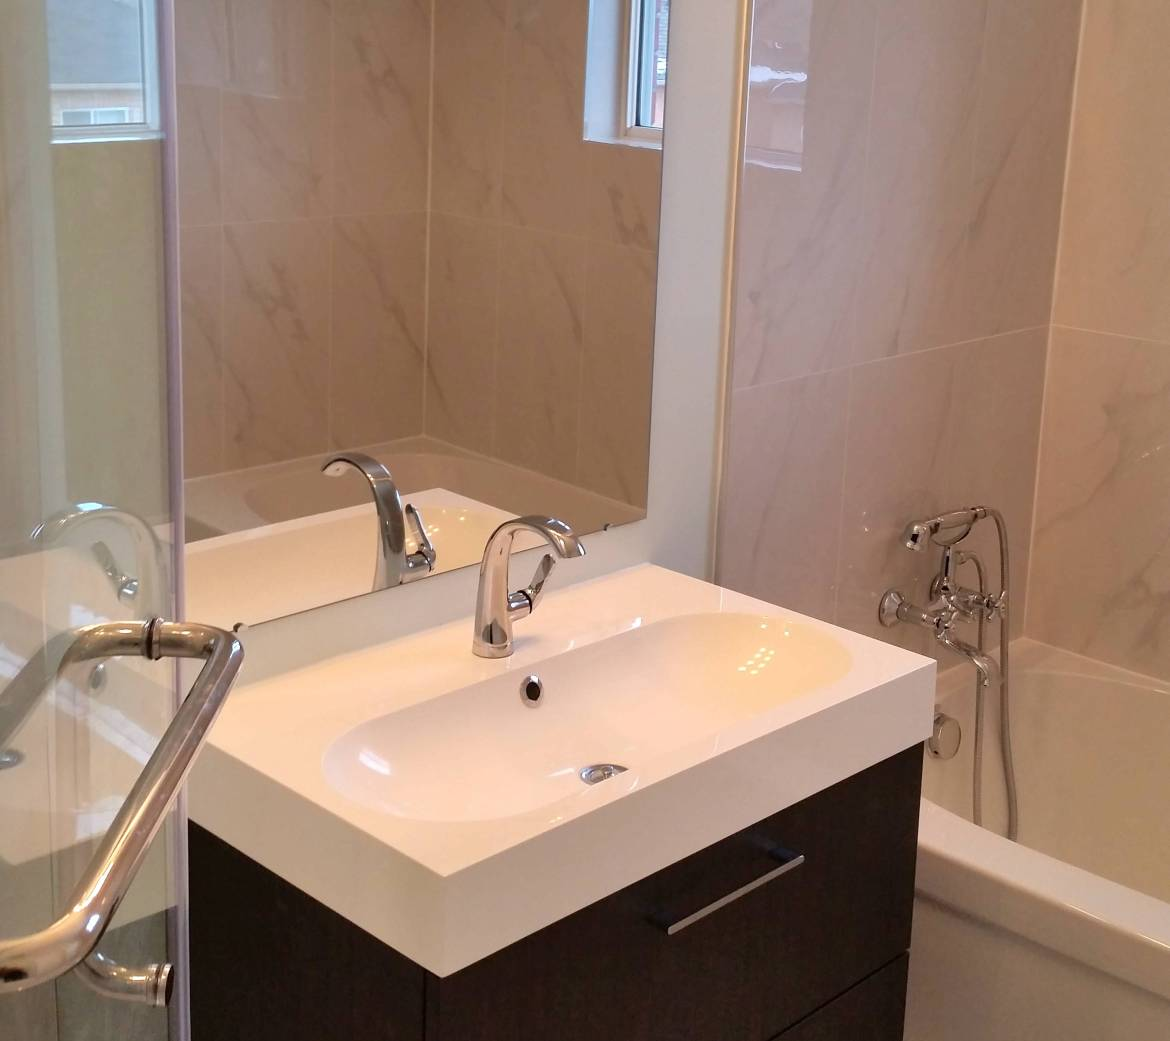 Bathroom Remodel, Toronto, Vaughan, GTA, Richmond Hill, Aurora, King, Newmarket, Mississauga, Brampton